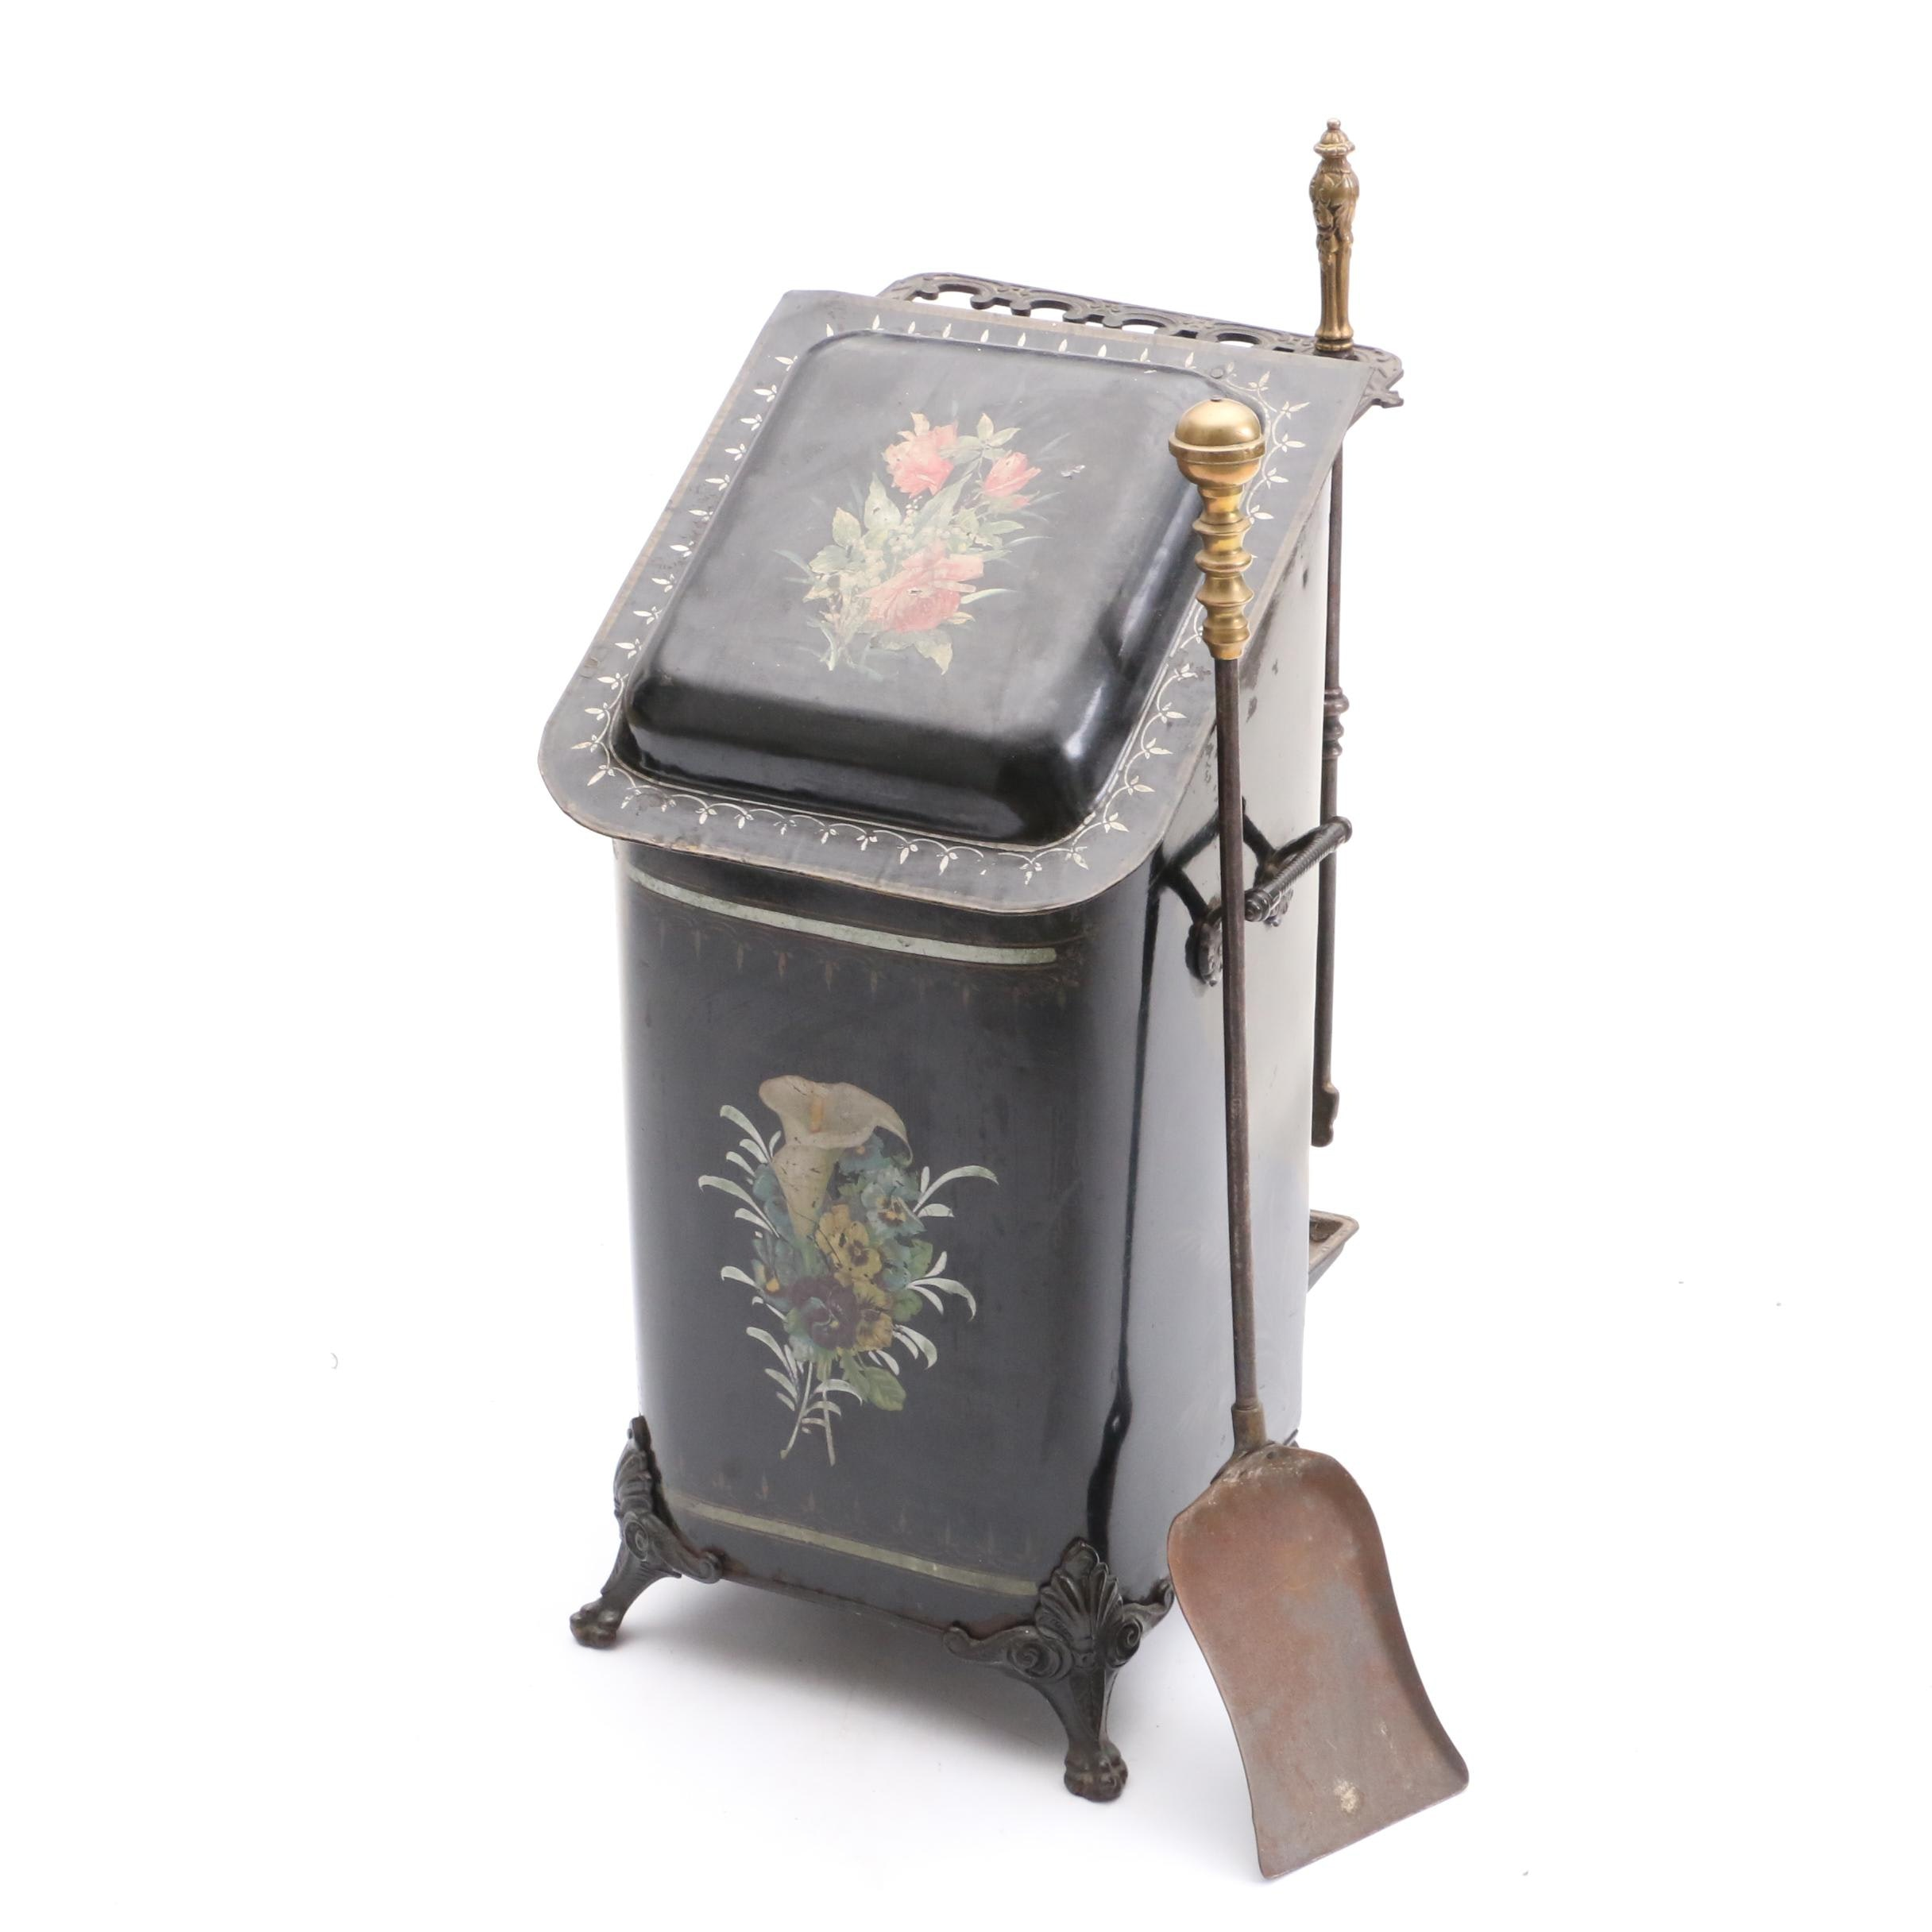 Antique Tole Painted Coal Bin with Fireplace Tools